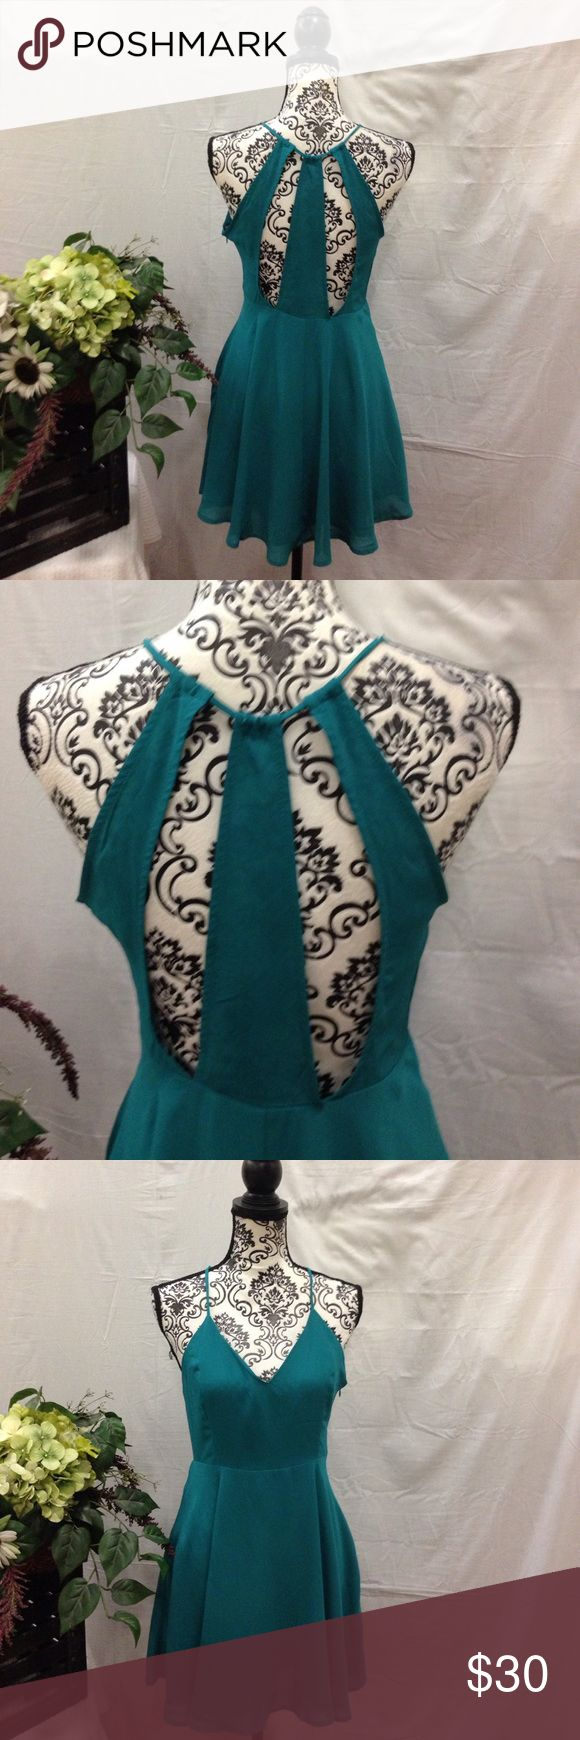 NWT Emerald Cutout Back Skater Dress Size medium. New with tags. Lined. Cutout back. Emerald green. Zip up side. V cut. Skater dress. No flaws. Free gift. Dresses Mini